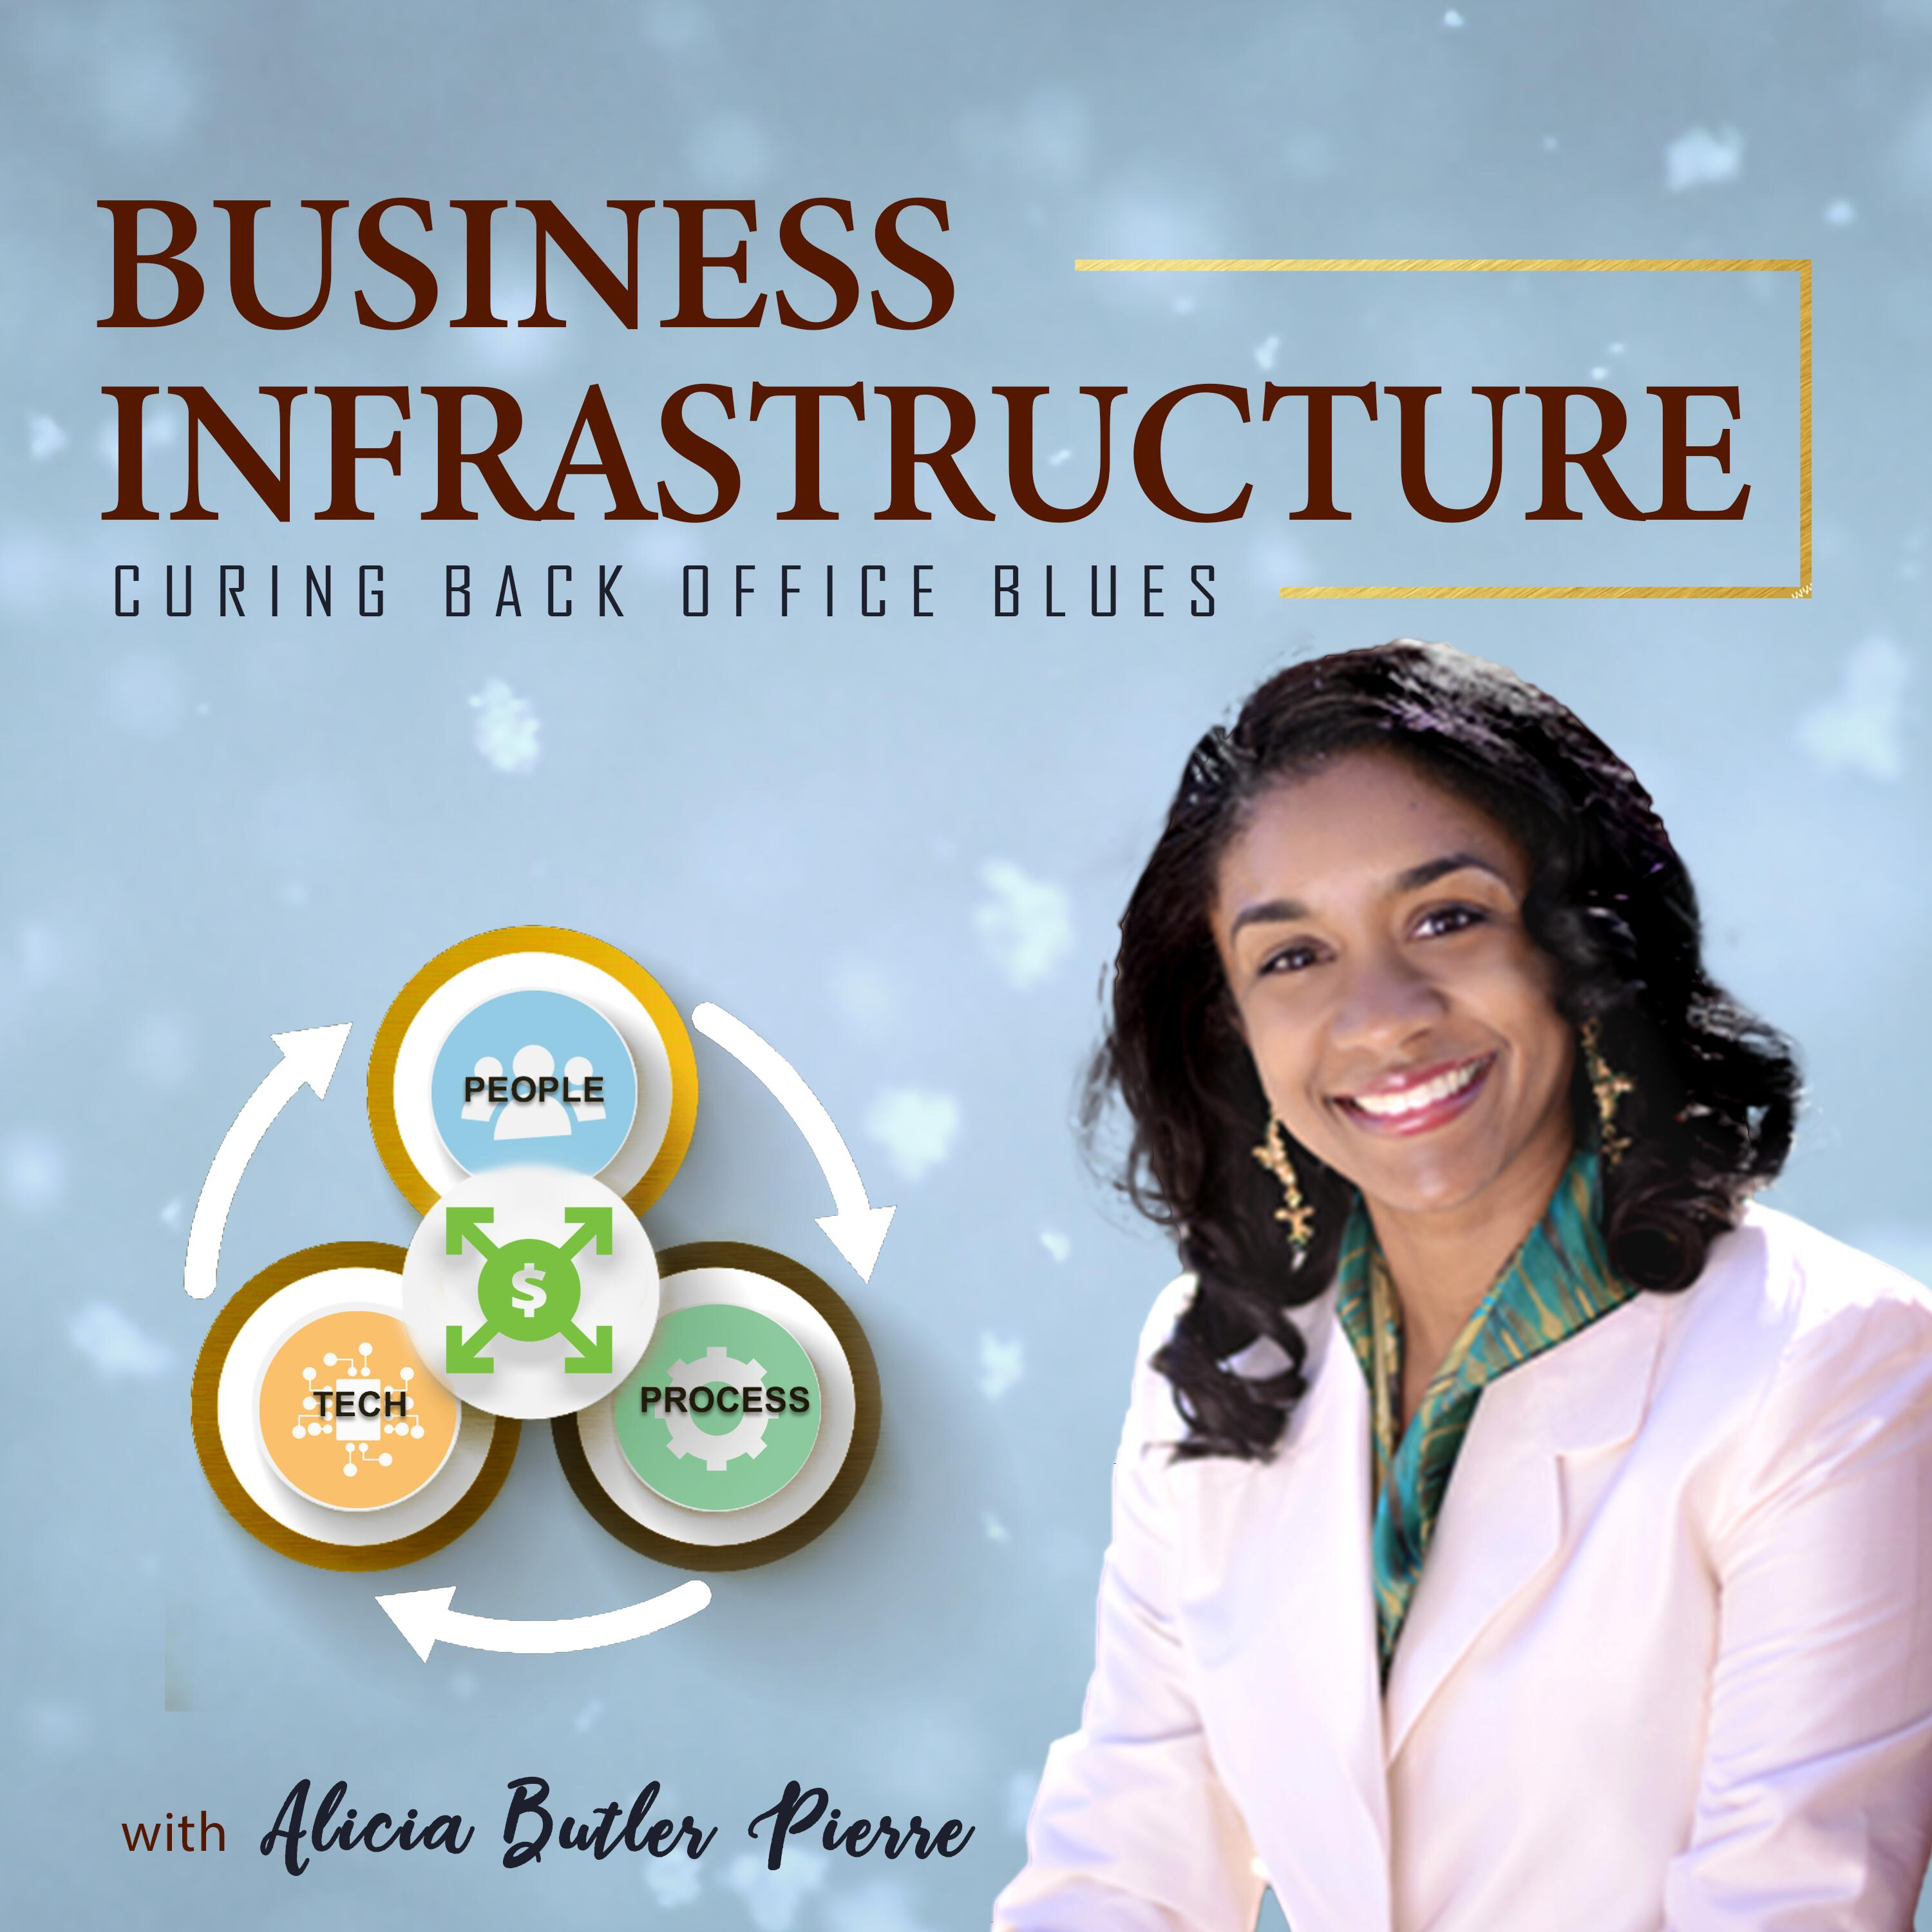 Business Infrastructure - Curing Back Office Blues